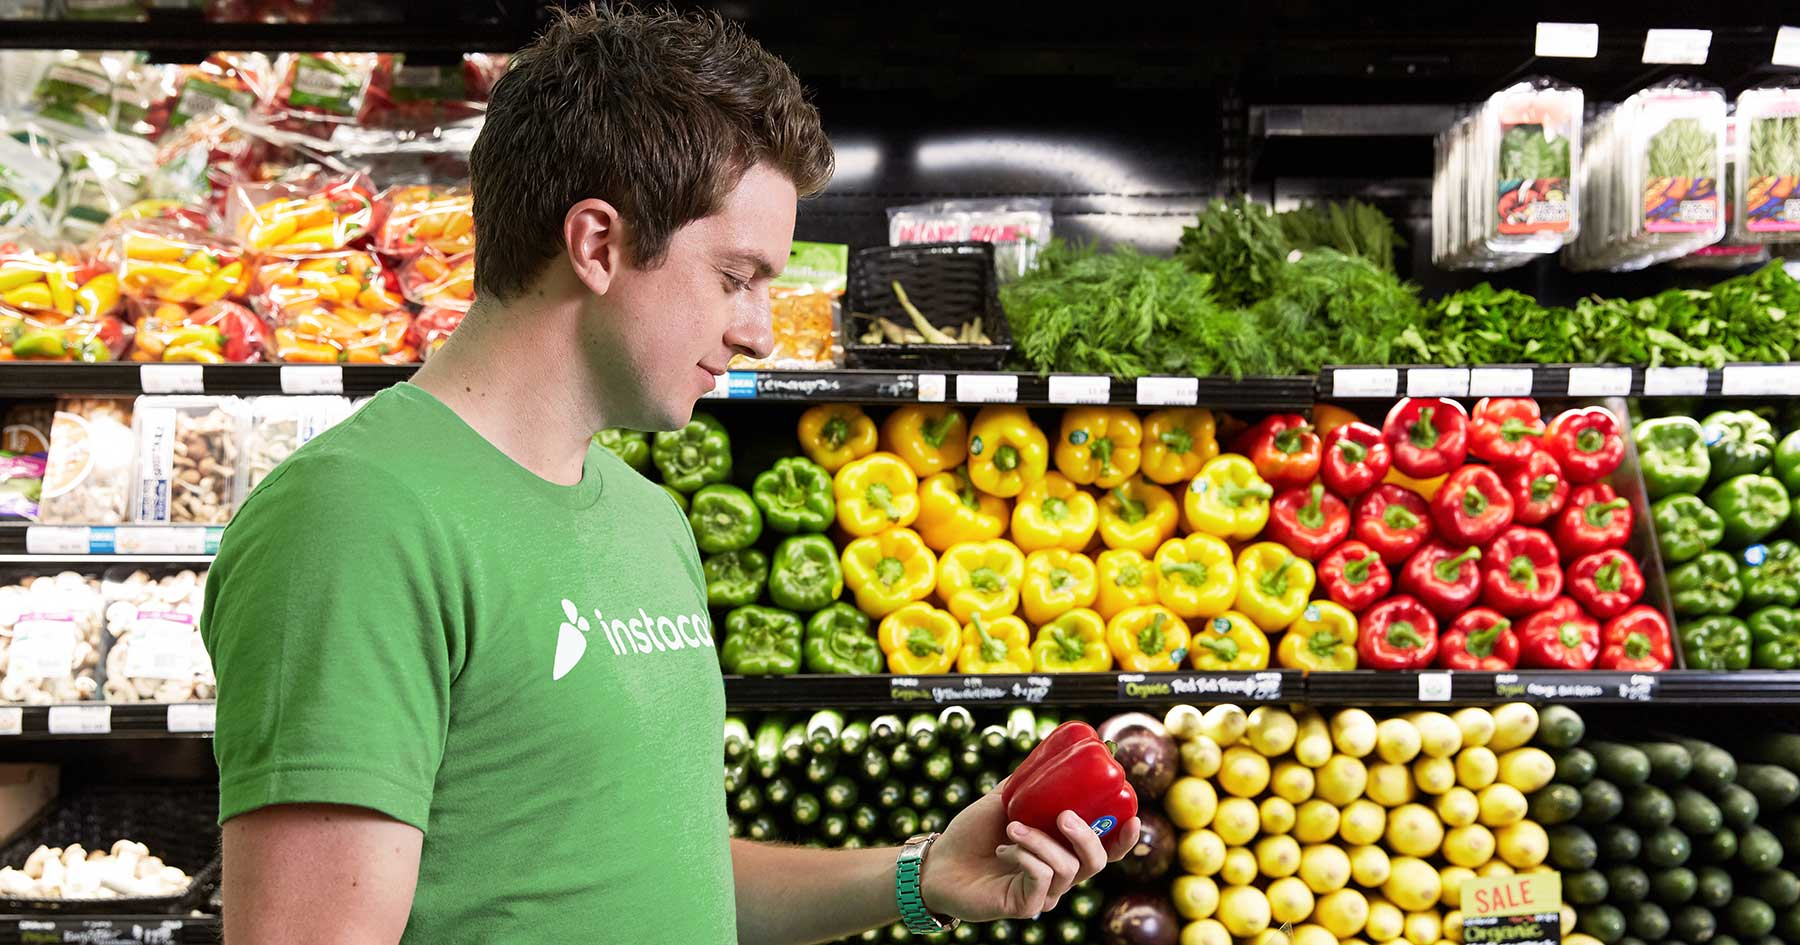 Instacart Again Resets Compensation Scheme In Response to